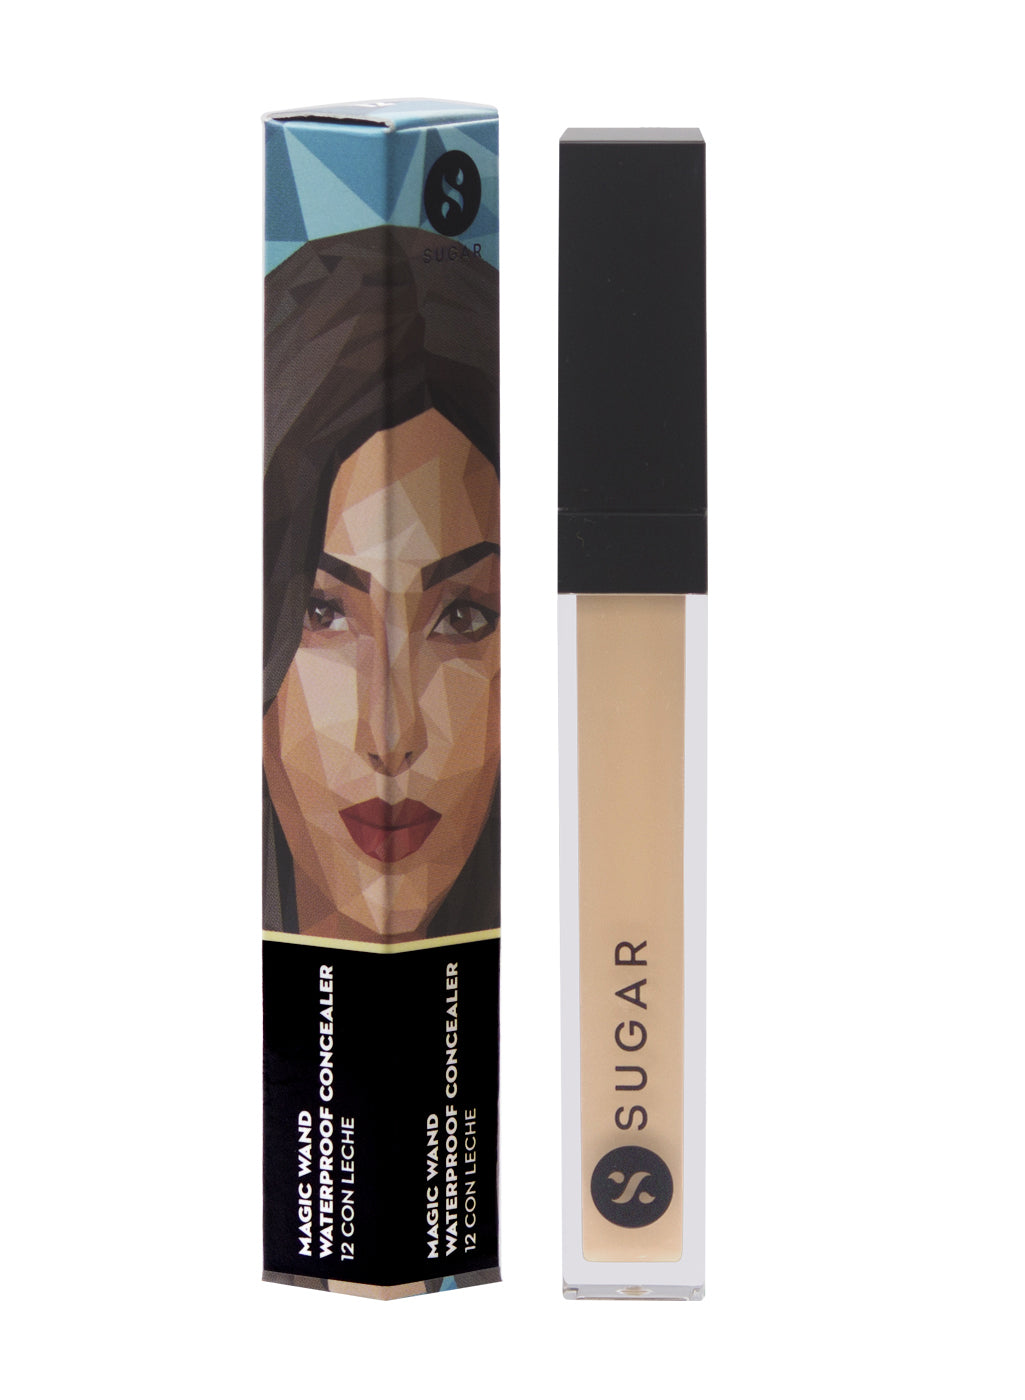 SUGAR Magic Wand Waterproof Concealer - 12 Con Leche (Light, Golden Undertone)